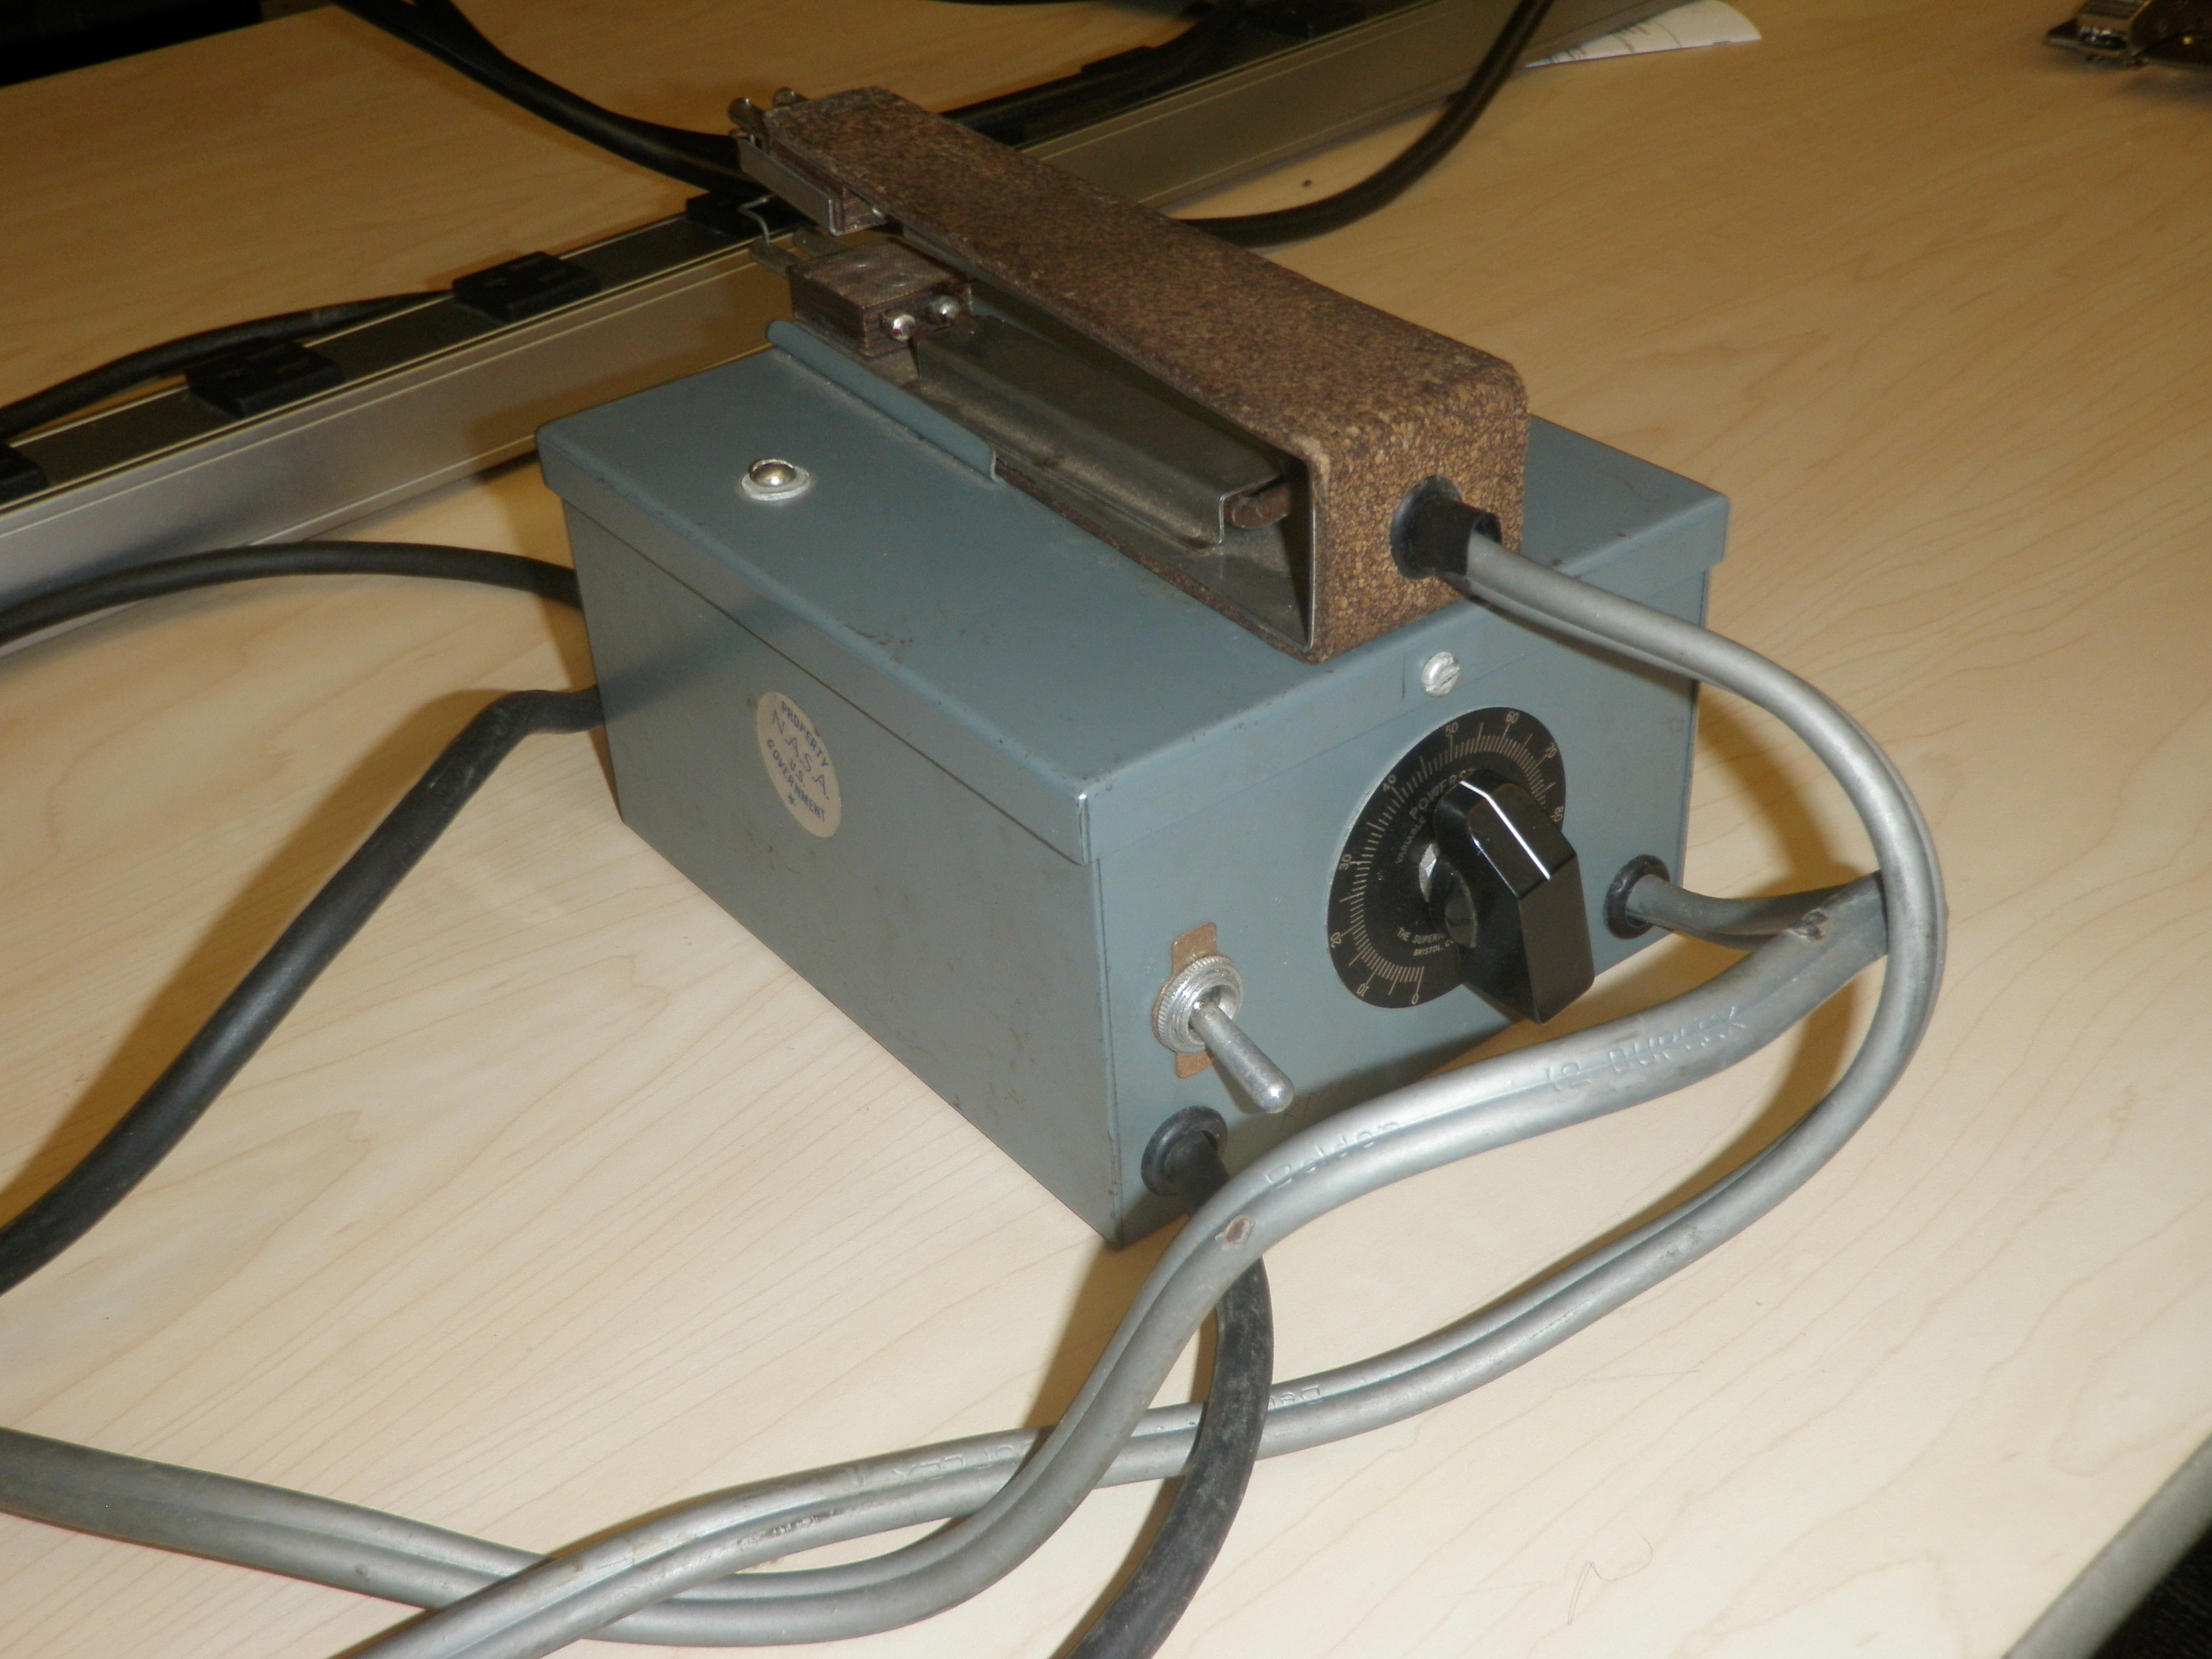 File:Thermal Wire Stripper (control end).JPG - Wikimedia Commons